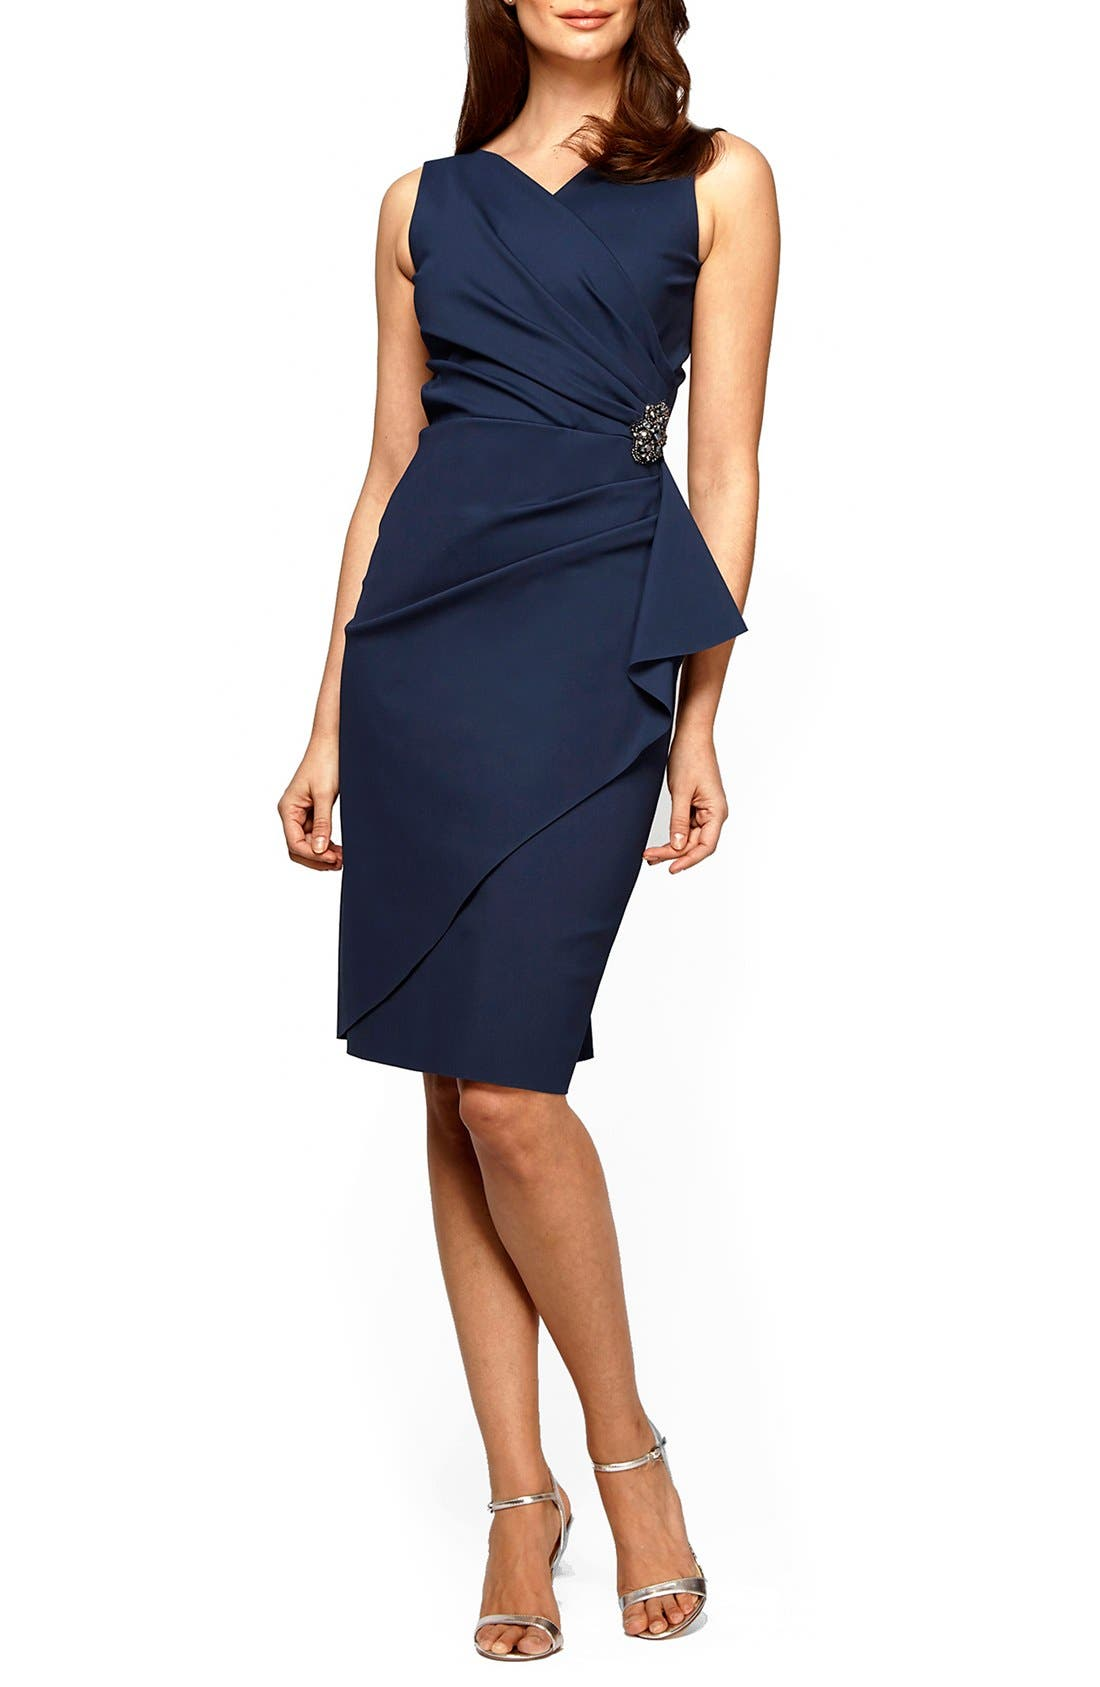 ALEX EVENINGS, Side Ruched Dress, Main thumbnail 1, color, NAVY